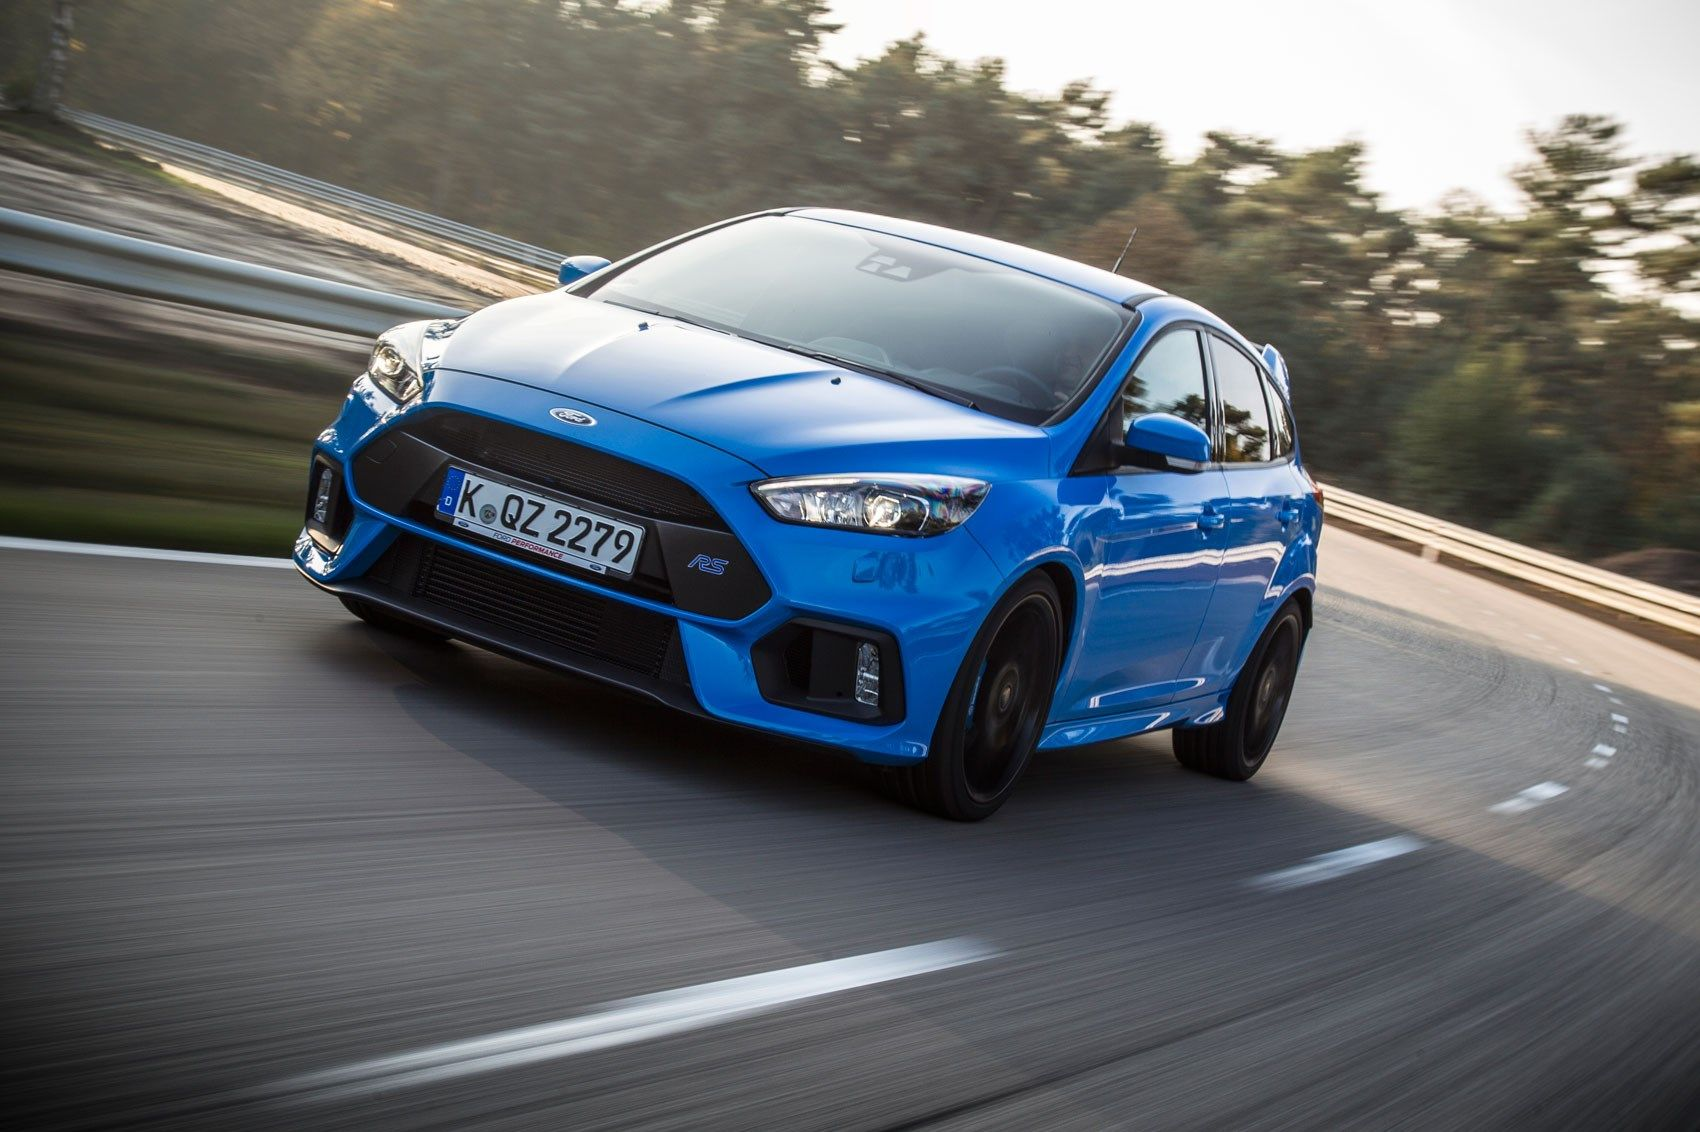 Ford Focus Rs 2016 First Ride Review Historia Del Automovil